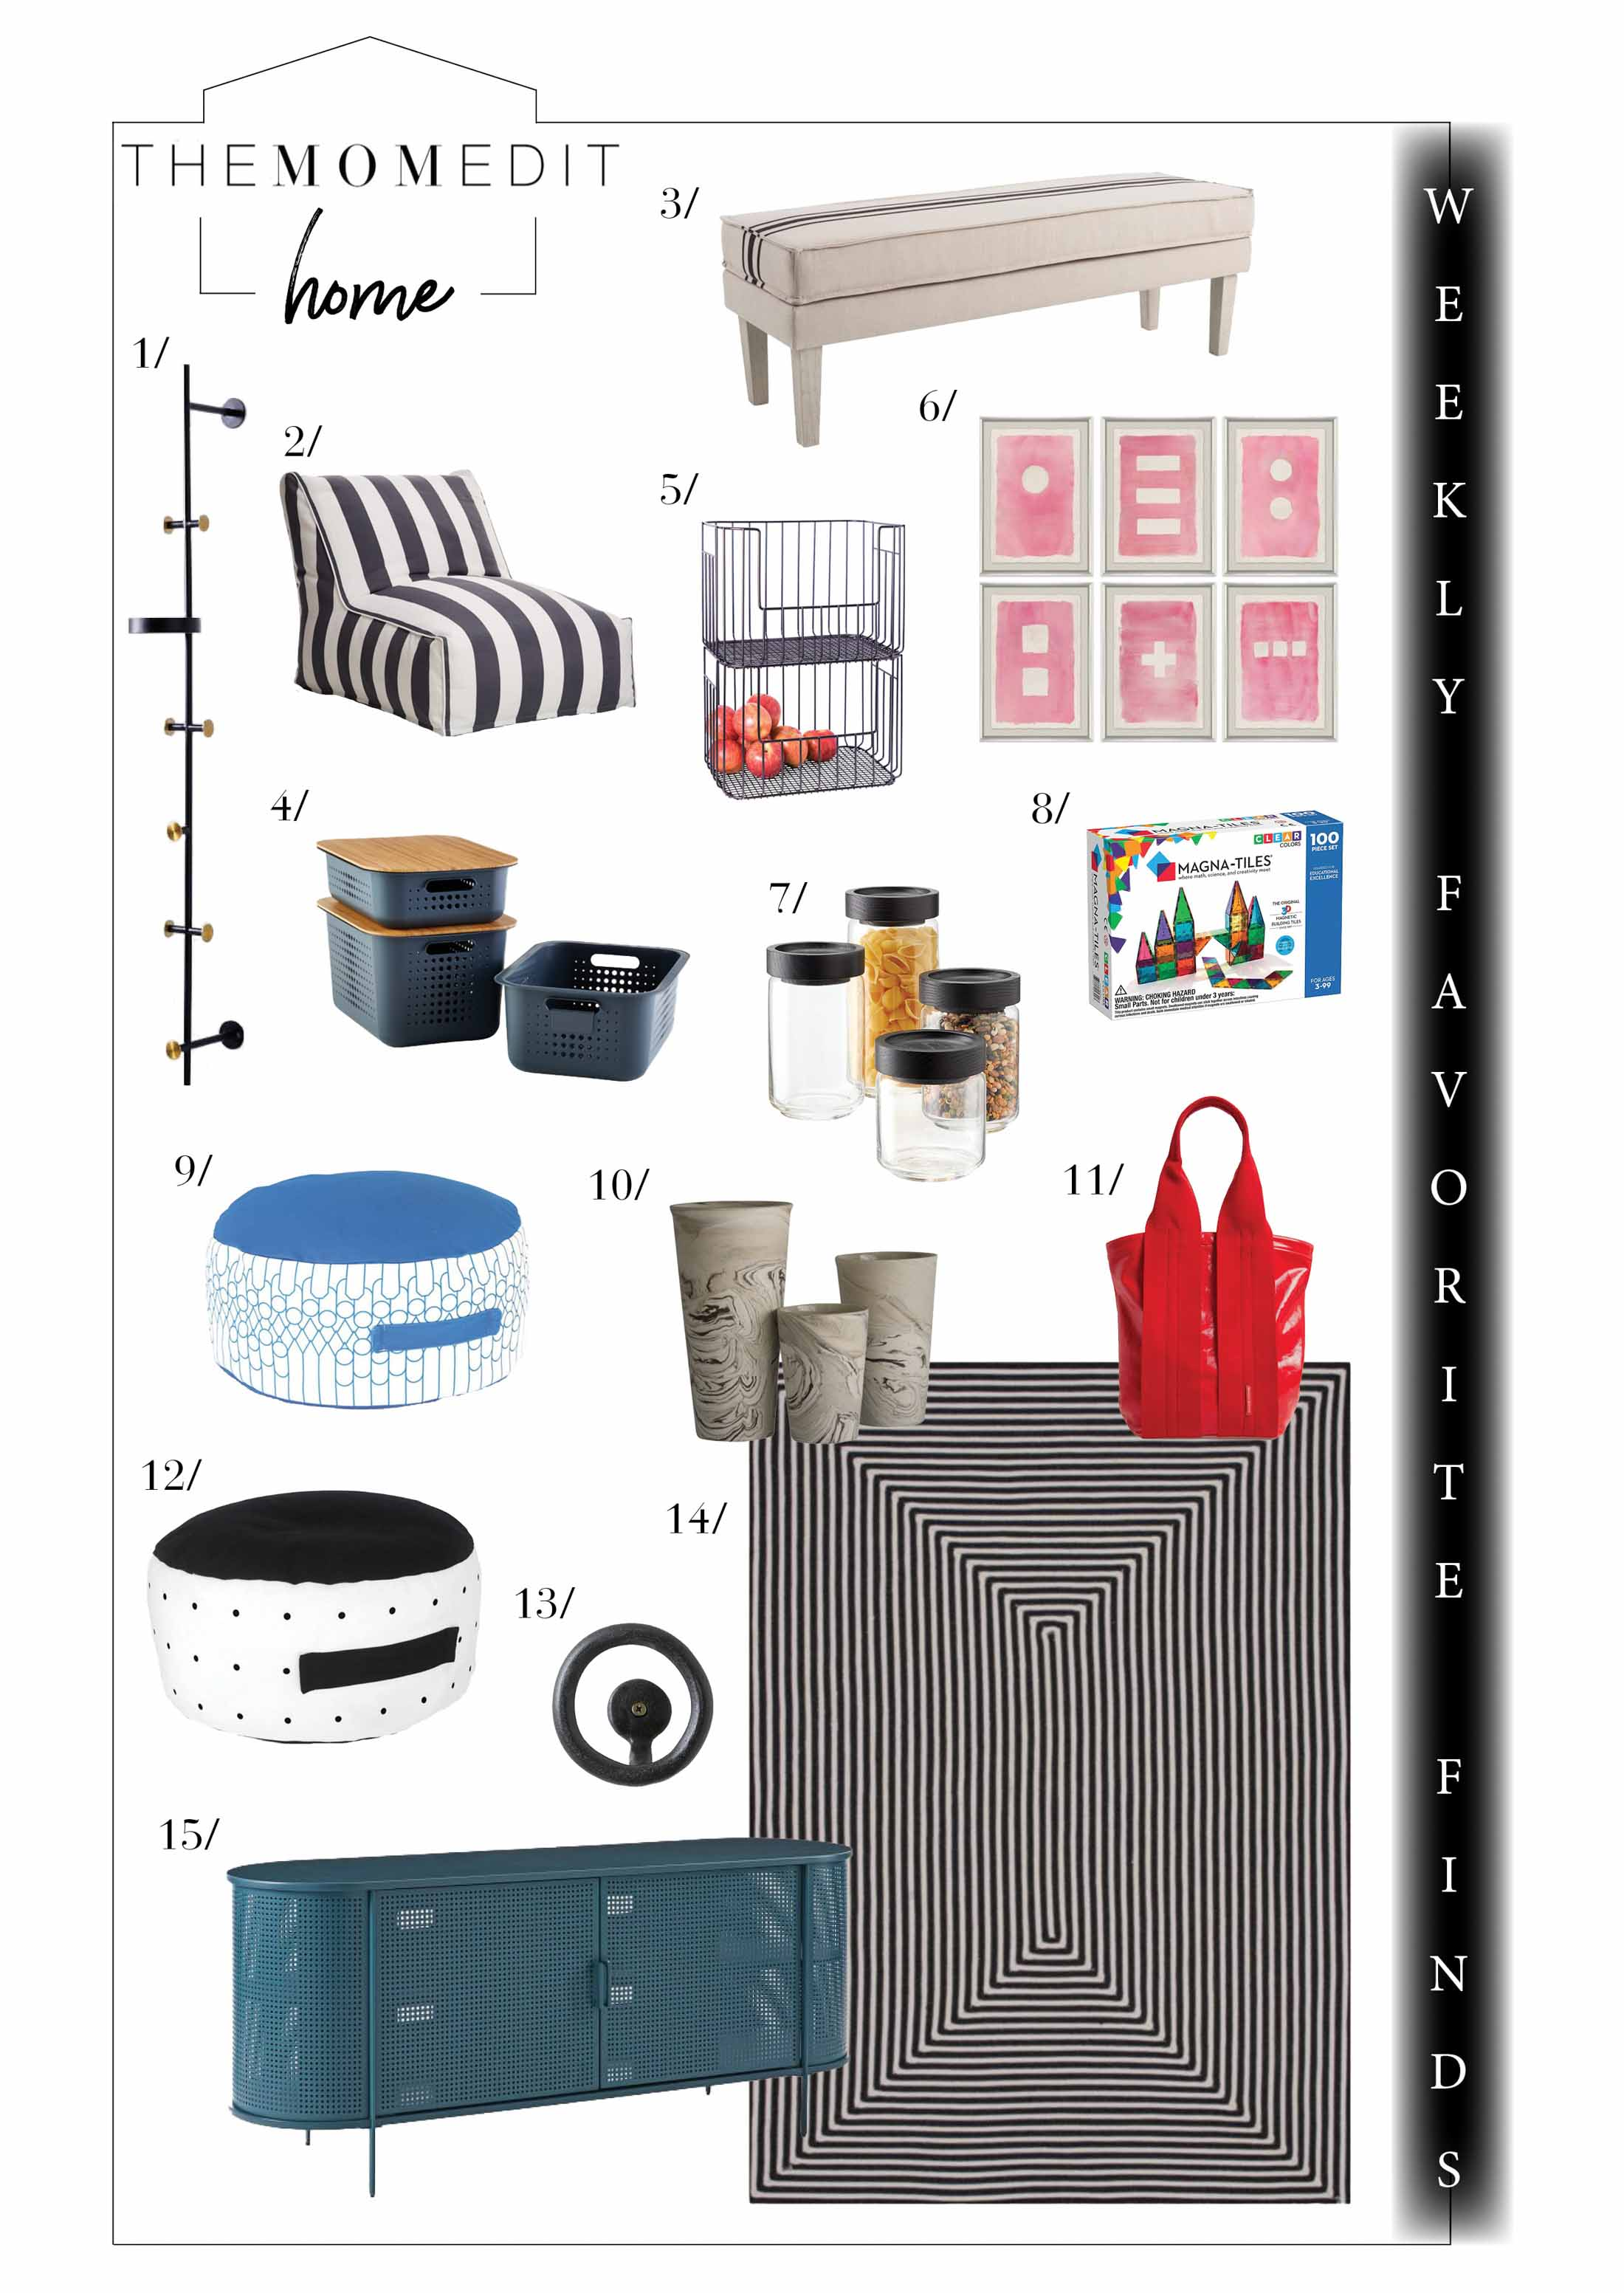 ding fun home storage & organization solutions is SO good. We're shopping those, plus a li'l furniture & all the home decor on sale (DWR, PBTeen...)